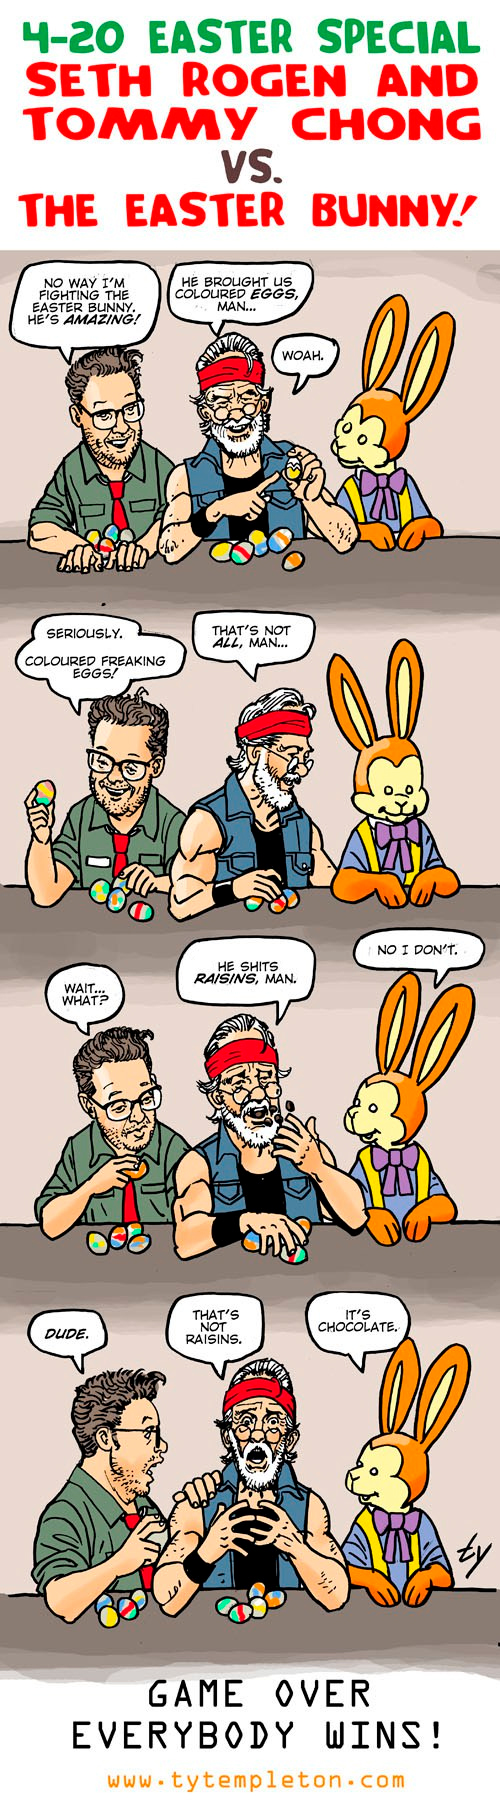 easter bun toon spelling corrected